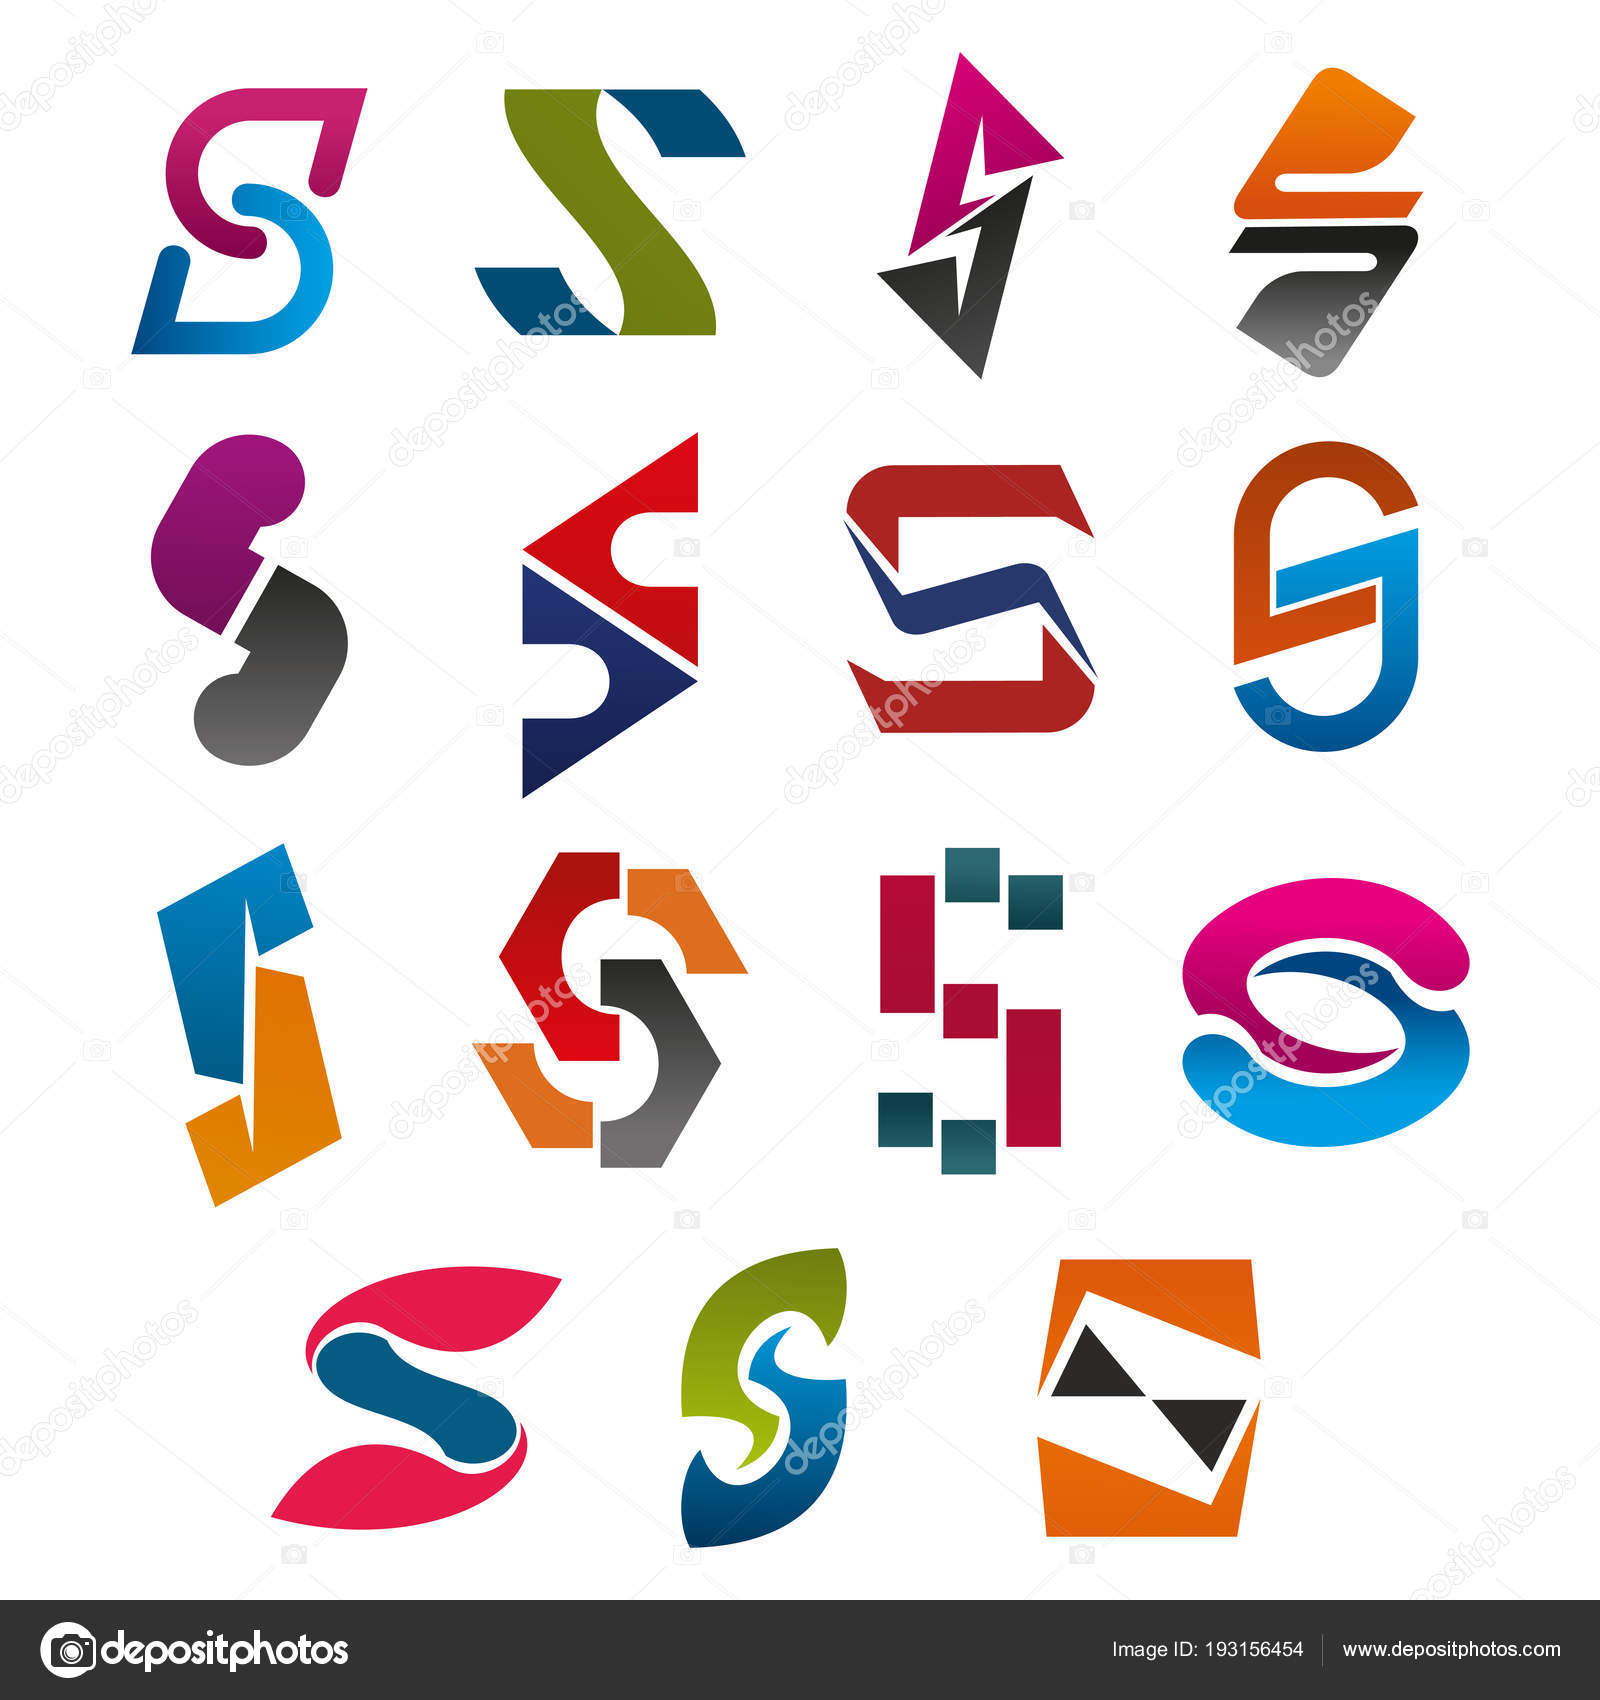 s letter vector icons